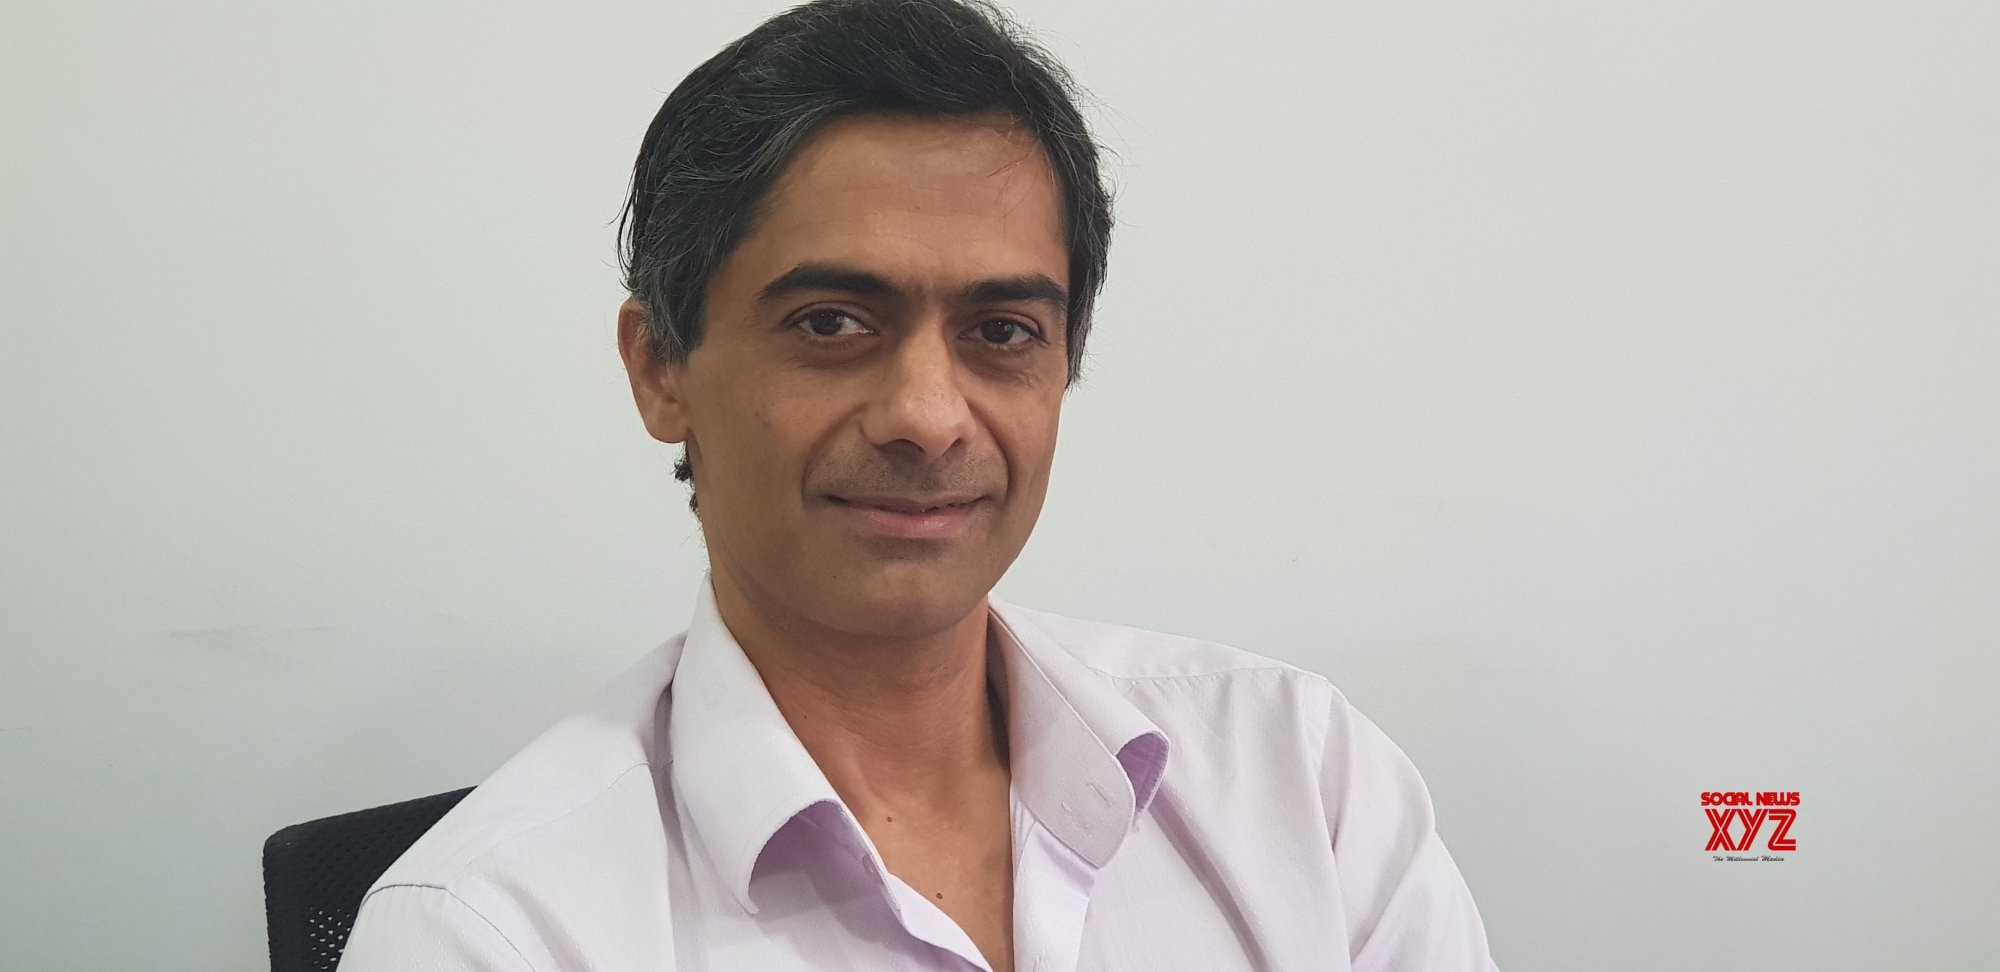 Quess hires Krish Seshadri to lead Monster operations